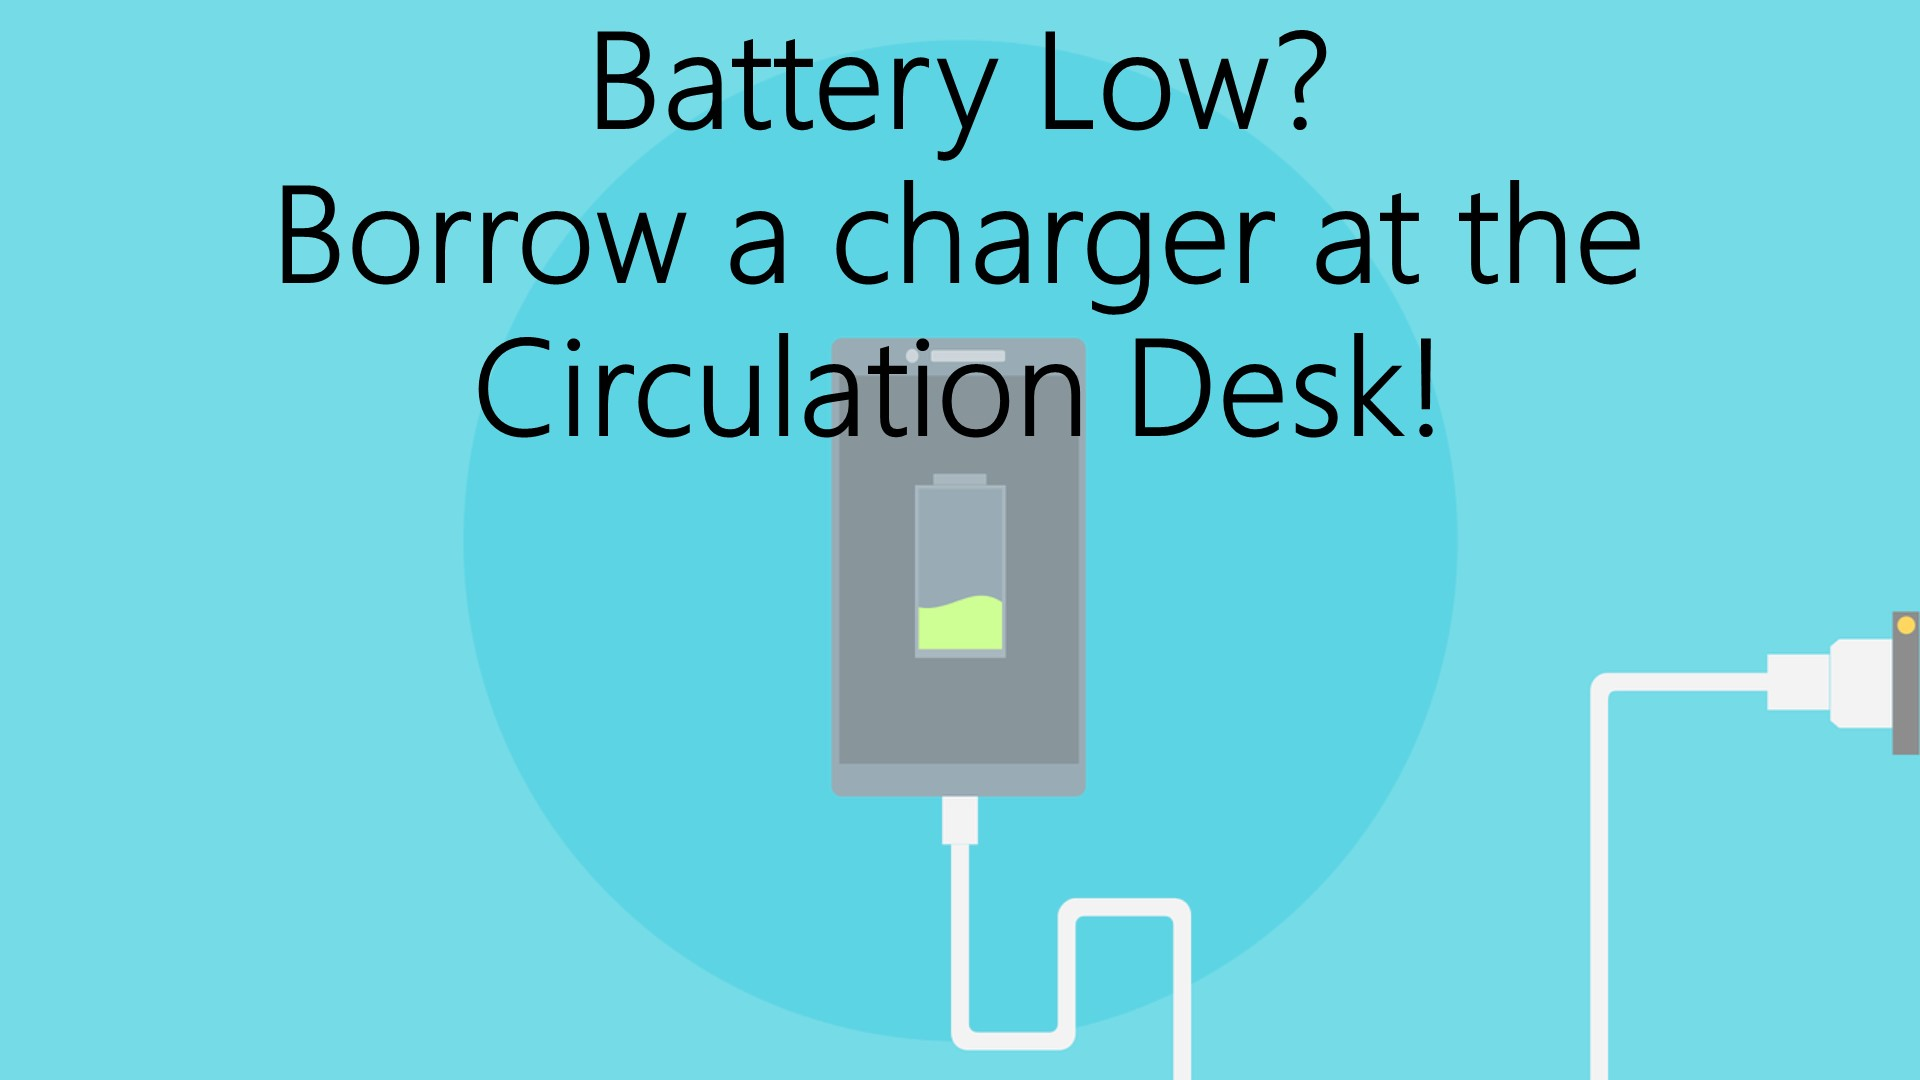 Promo for chargers at circulation desk